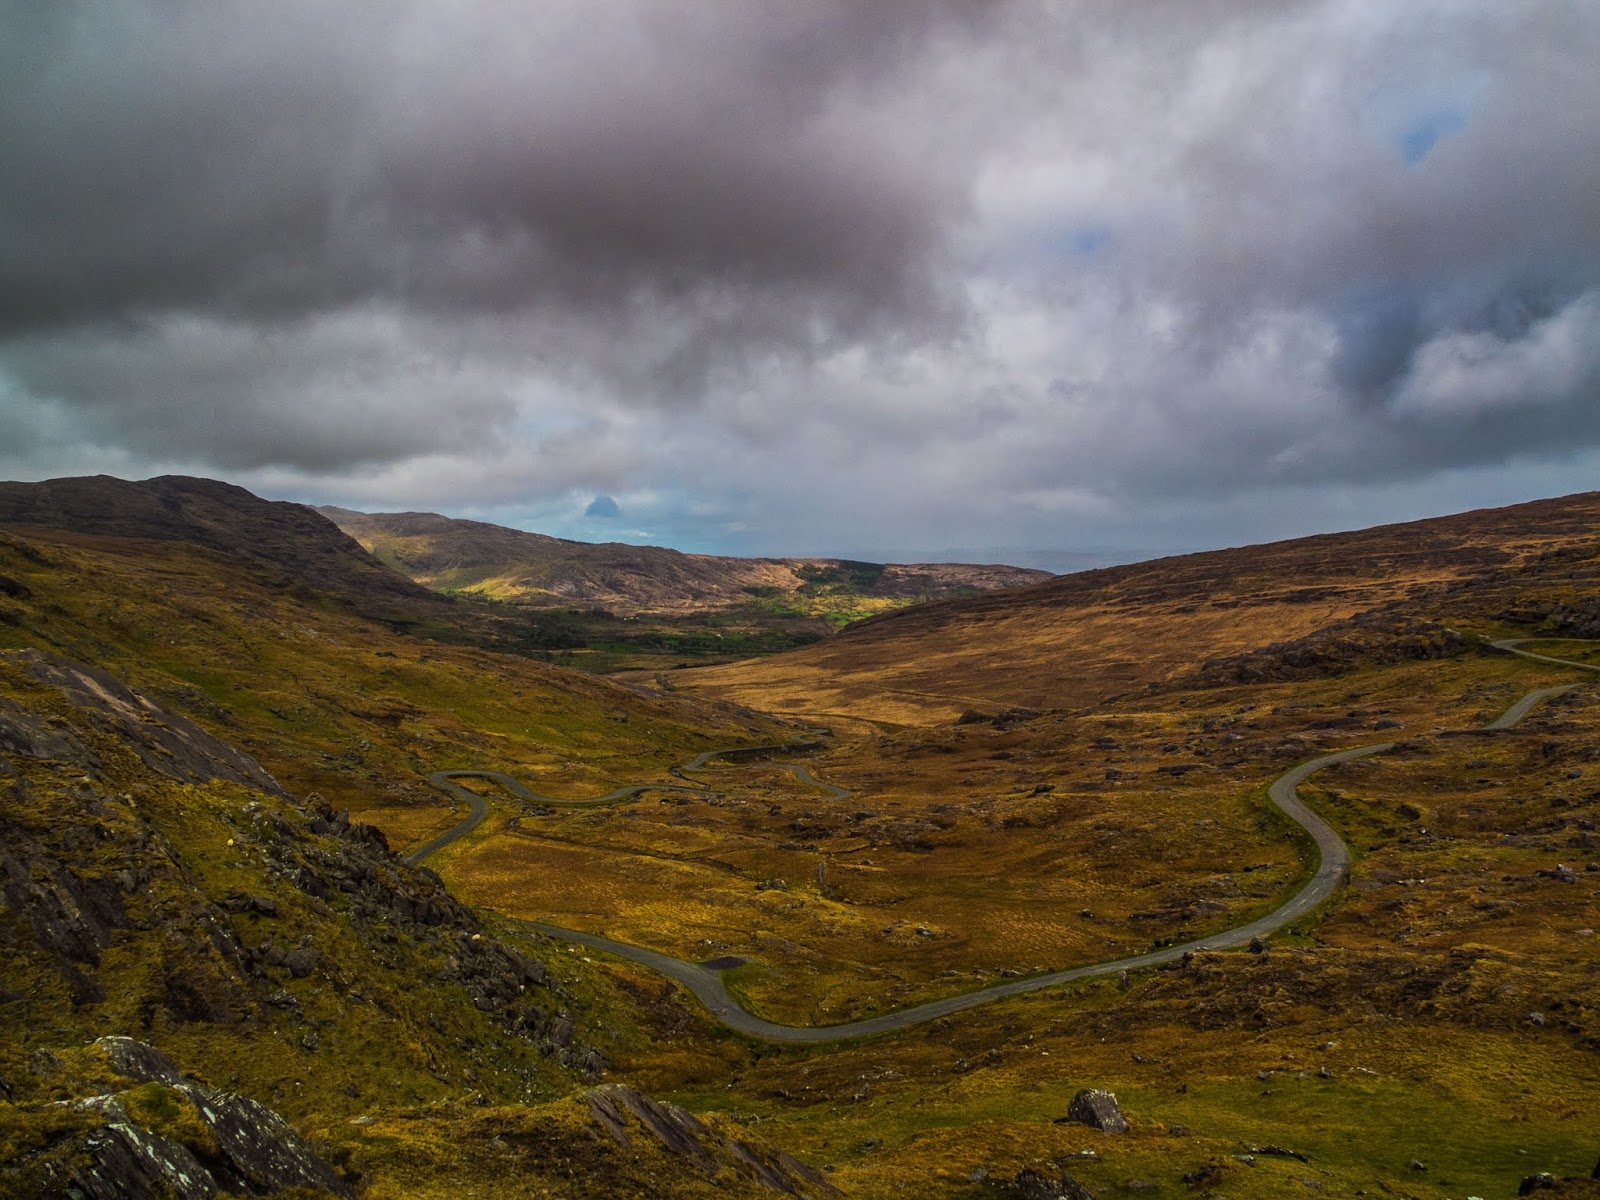 A view of the serpentine road called the Healy Pass in the Caha Mountain range.